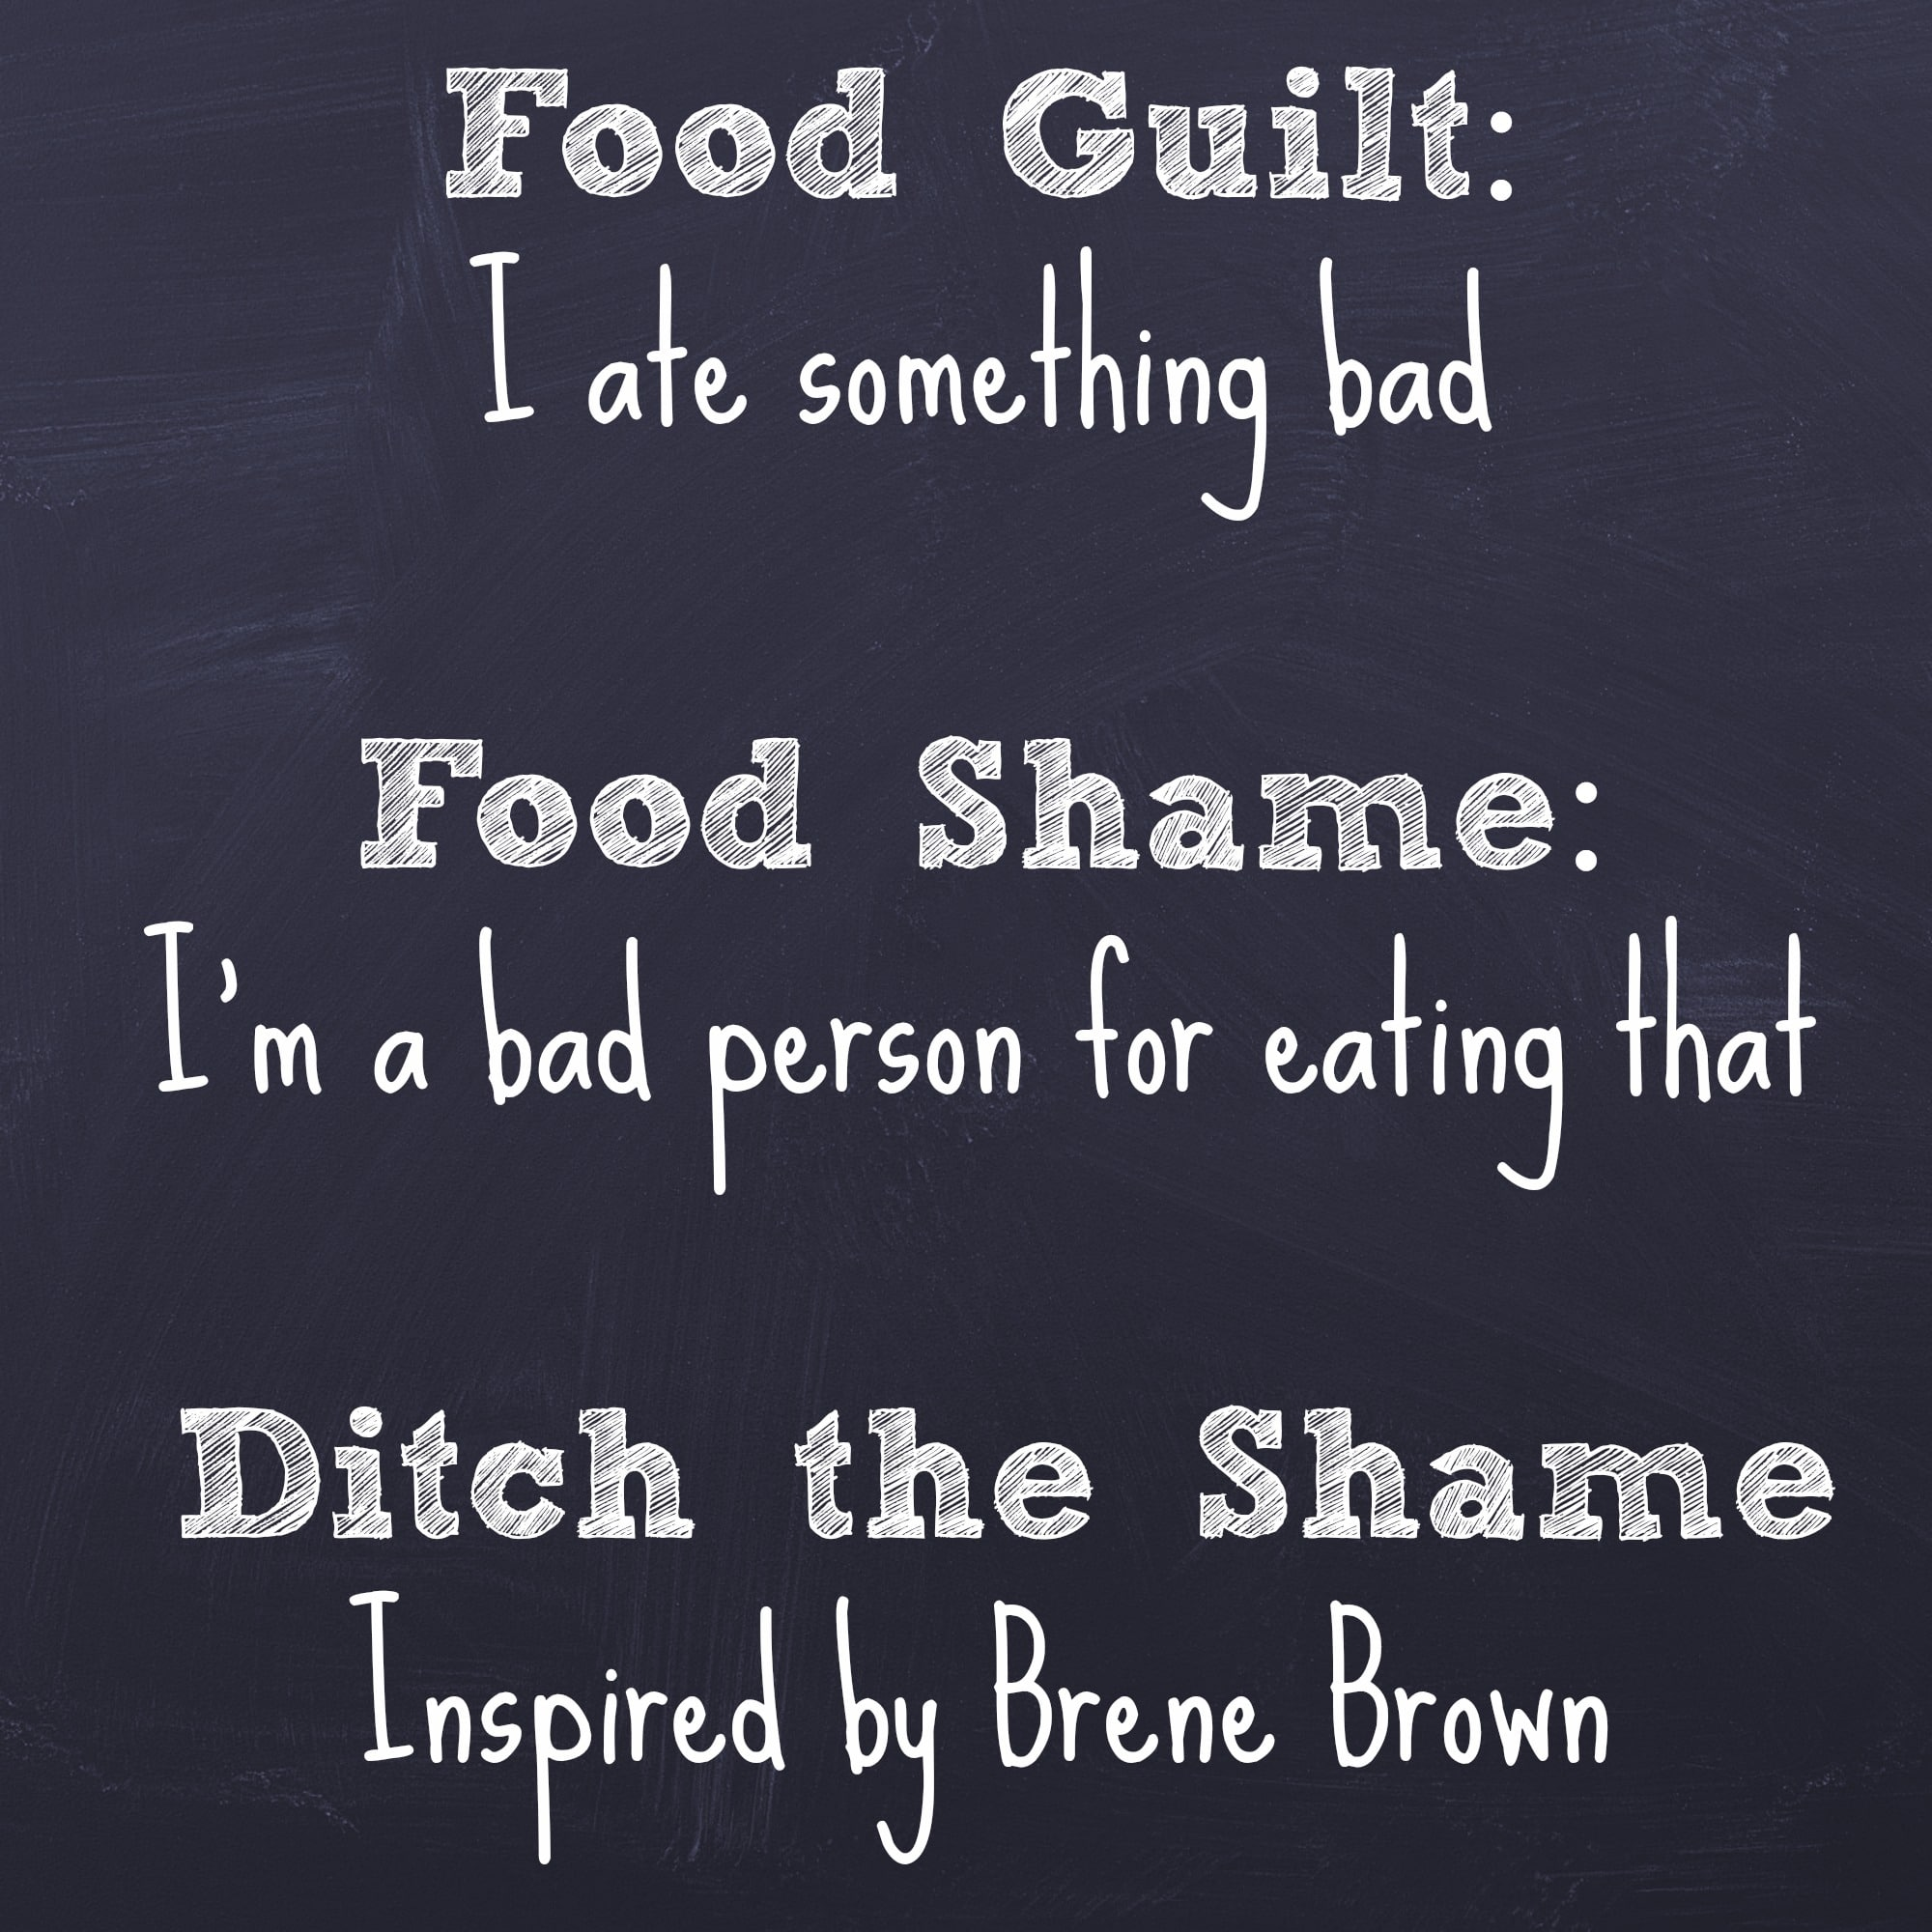 guilt and shame Although shame and guilt may seem similar, shame is highly correlated with addiction, depression, and aggression in contrast, guilt is linked to empathy and understanding other perspectives.